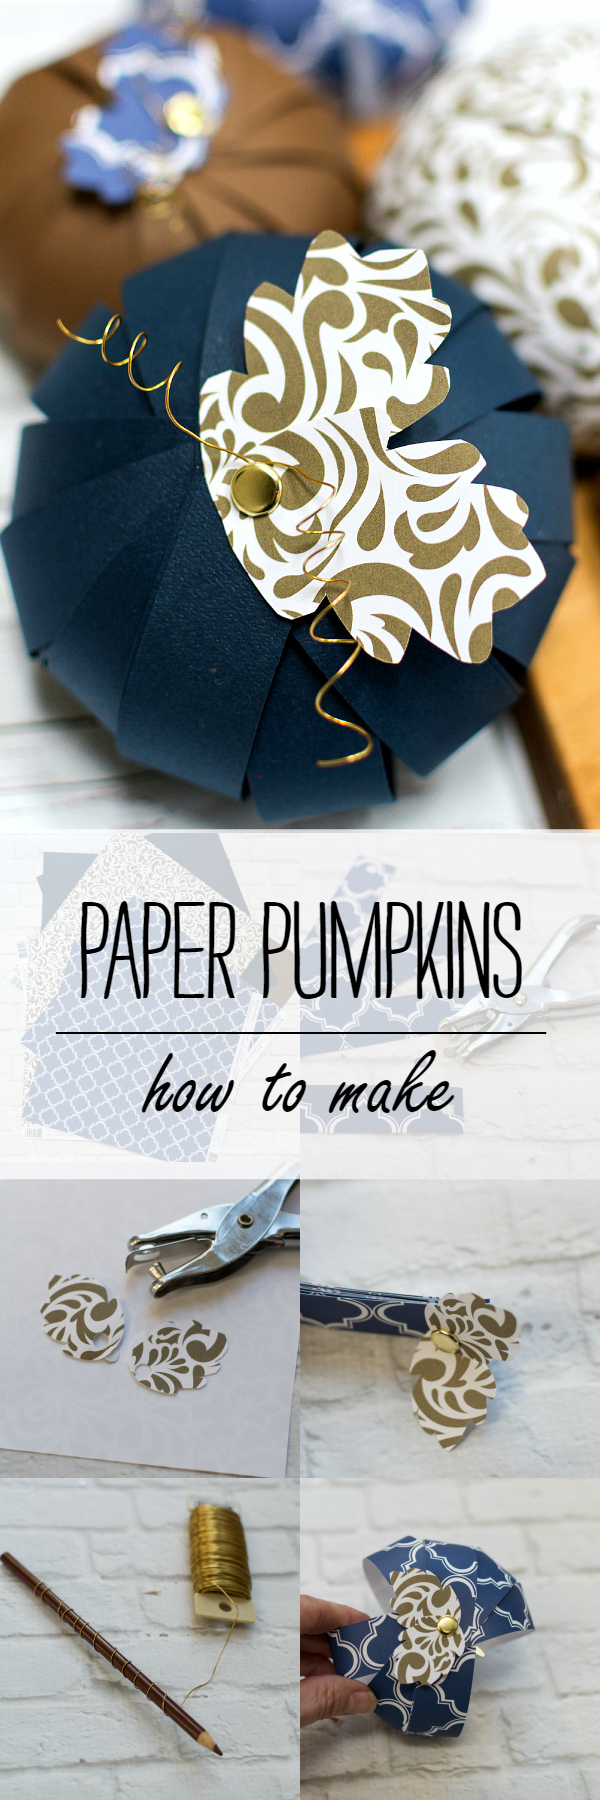 Halloween Craft Ideas Using Paper